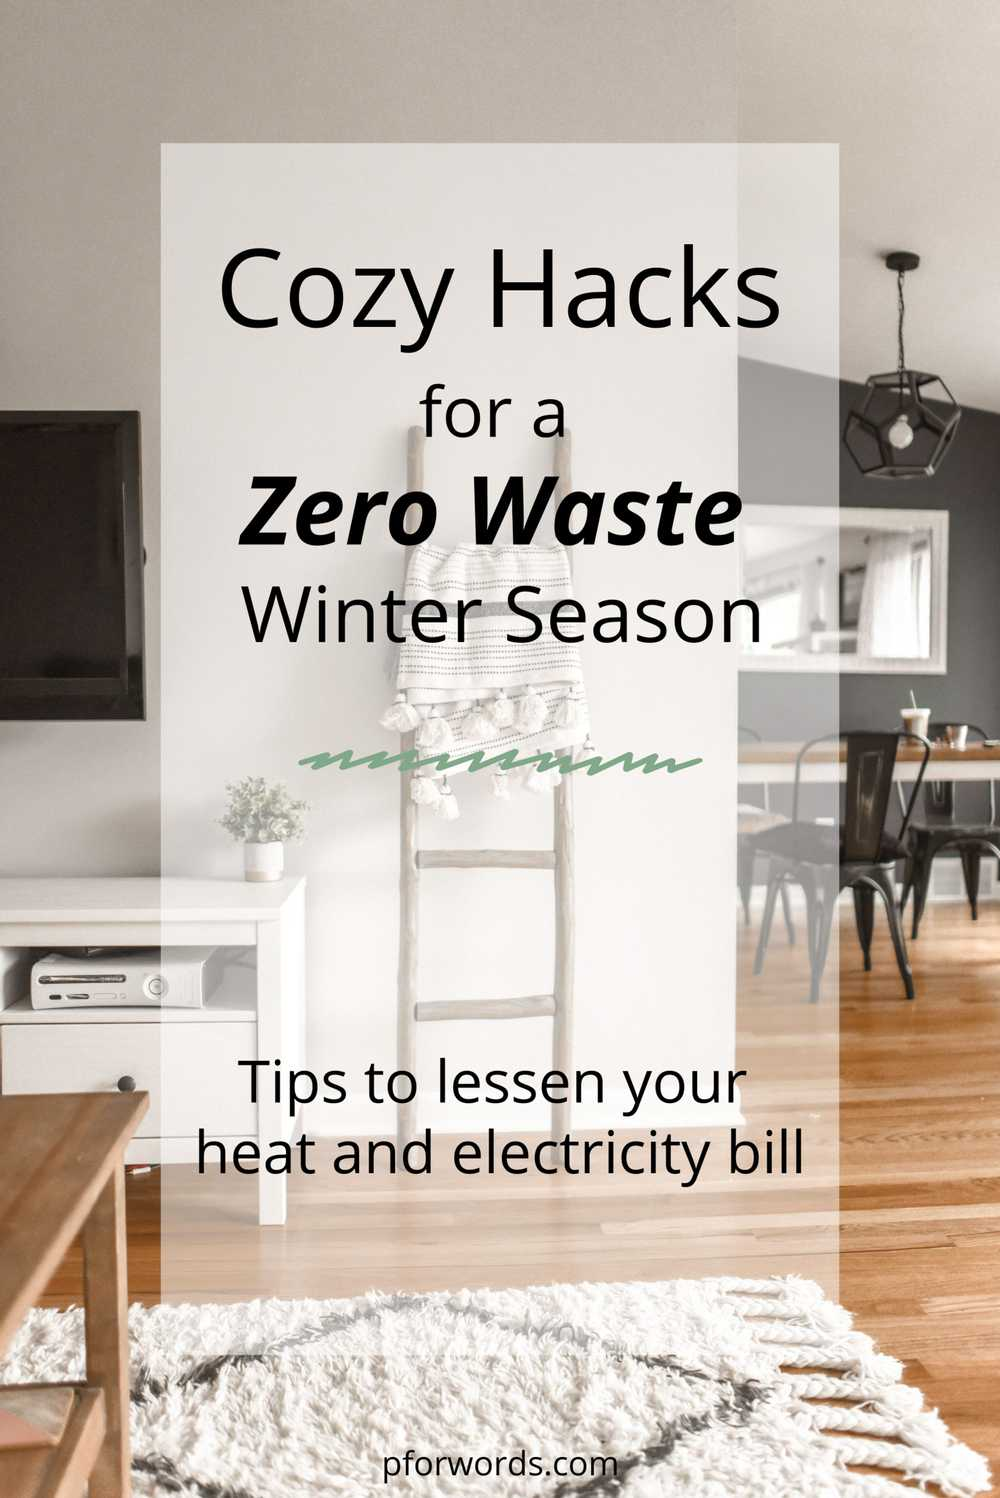 These tips help me cut down on my heating and electricity bill, while making my home super cozy! Bonus: it saves me a ton of money too!